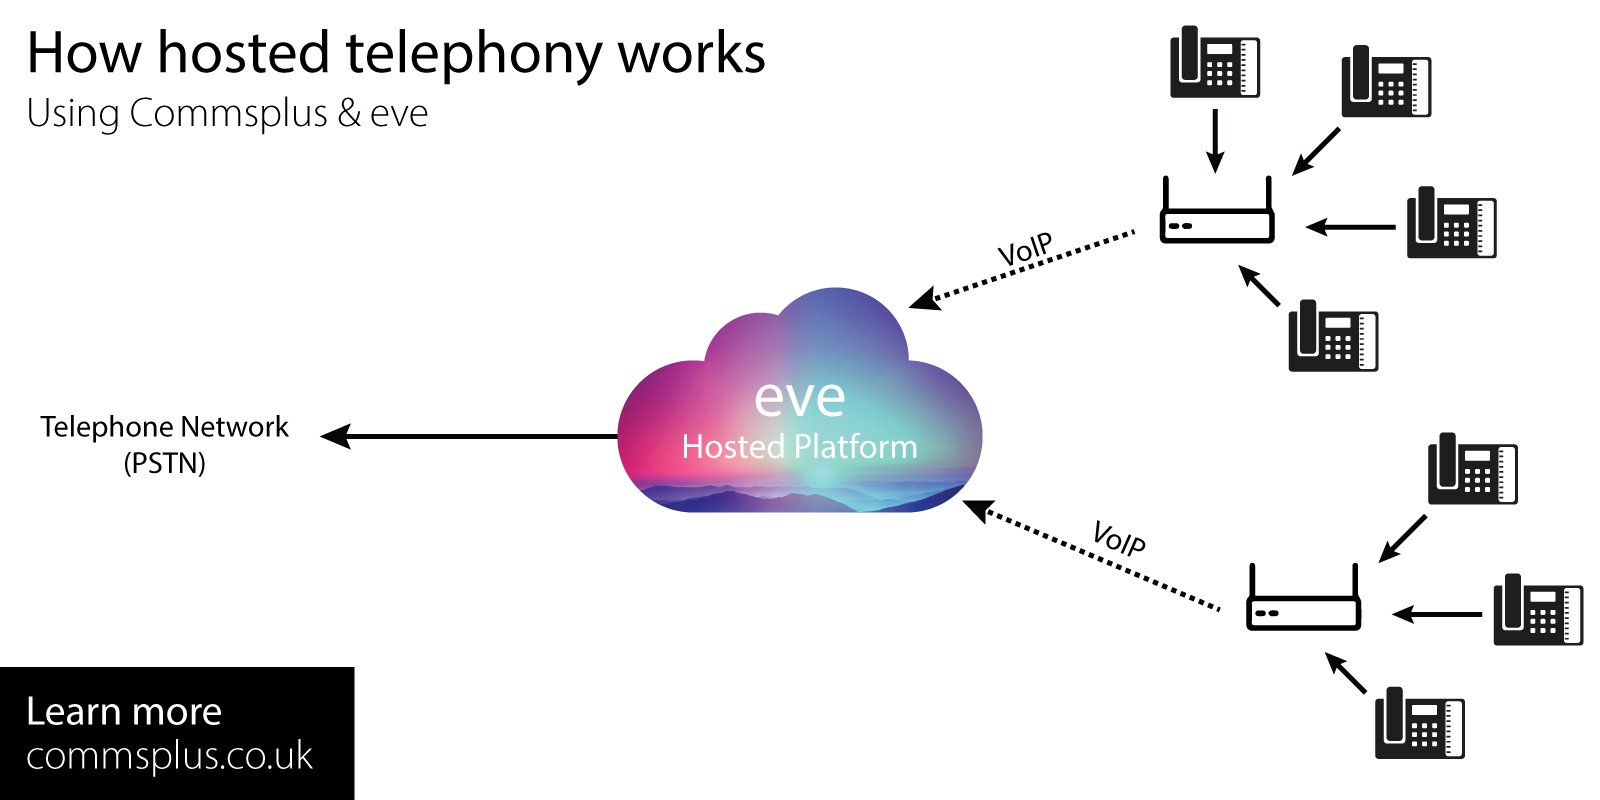 A diagram showing hosted telephony works